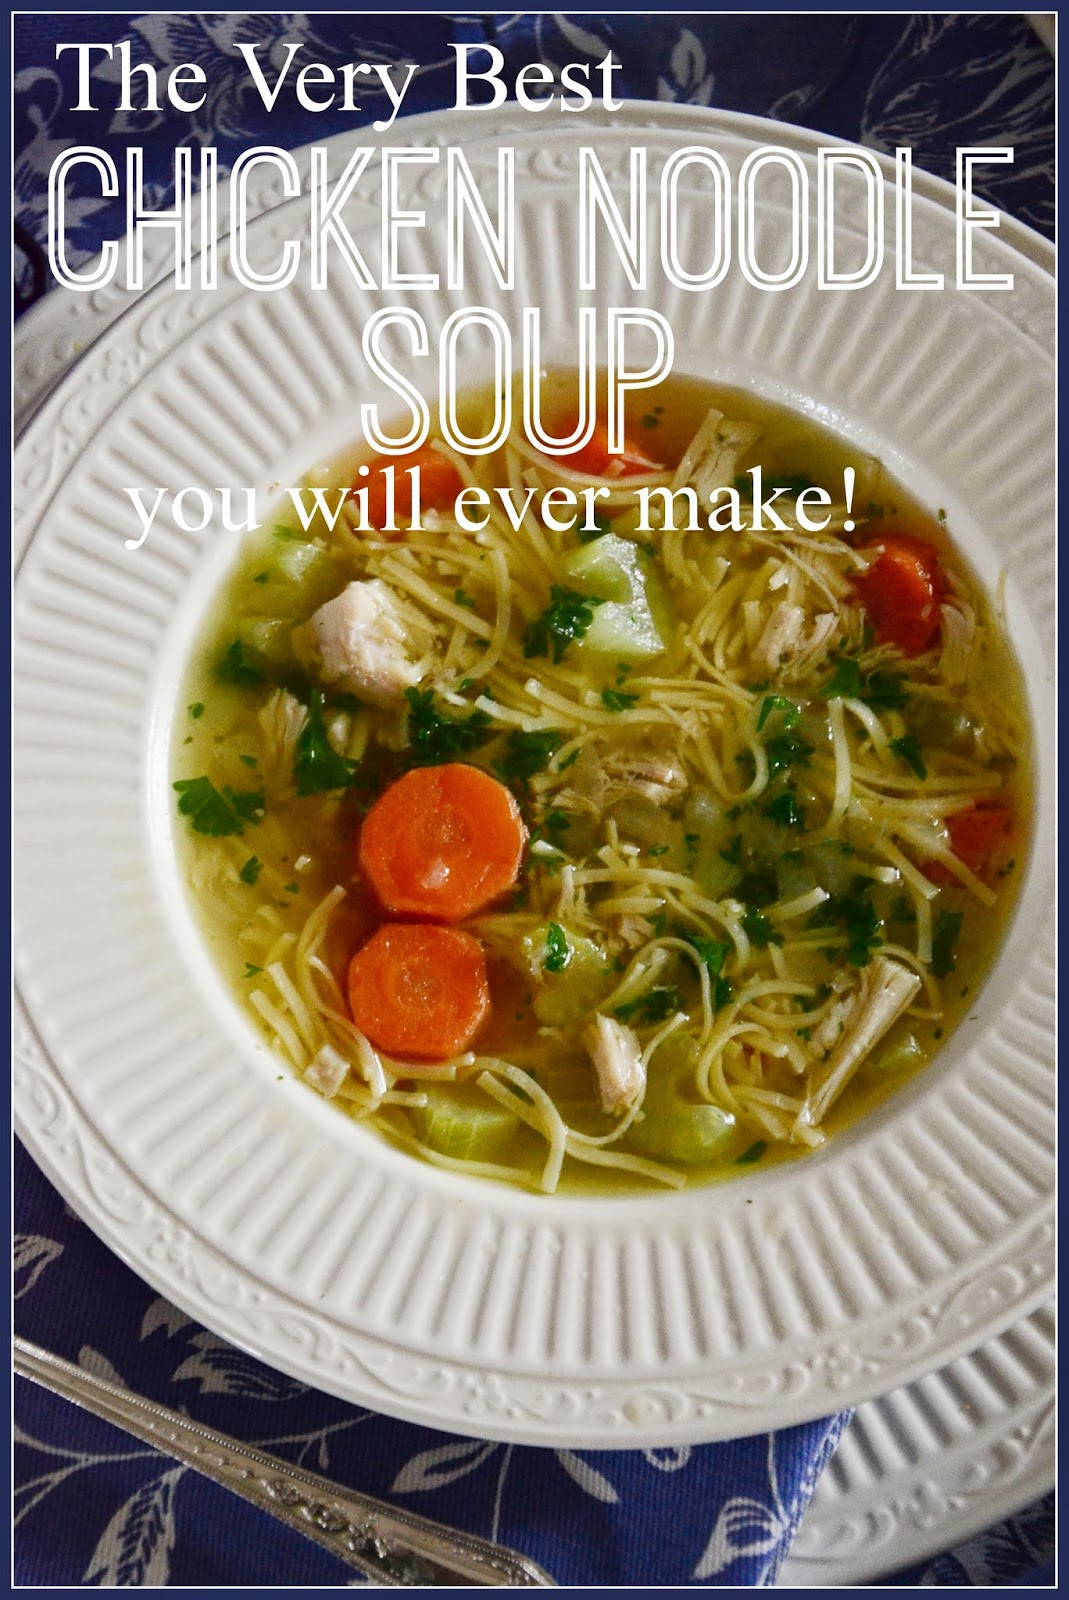 StoneGable: How To Make Perfect Chicken Noodle Soup